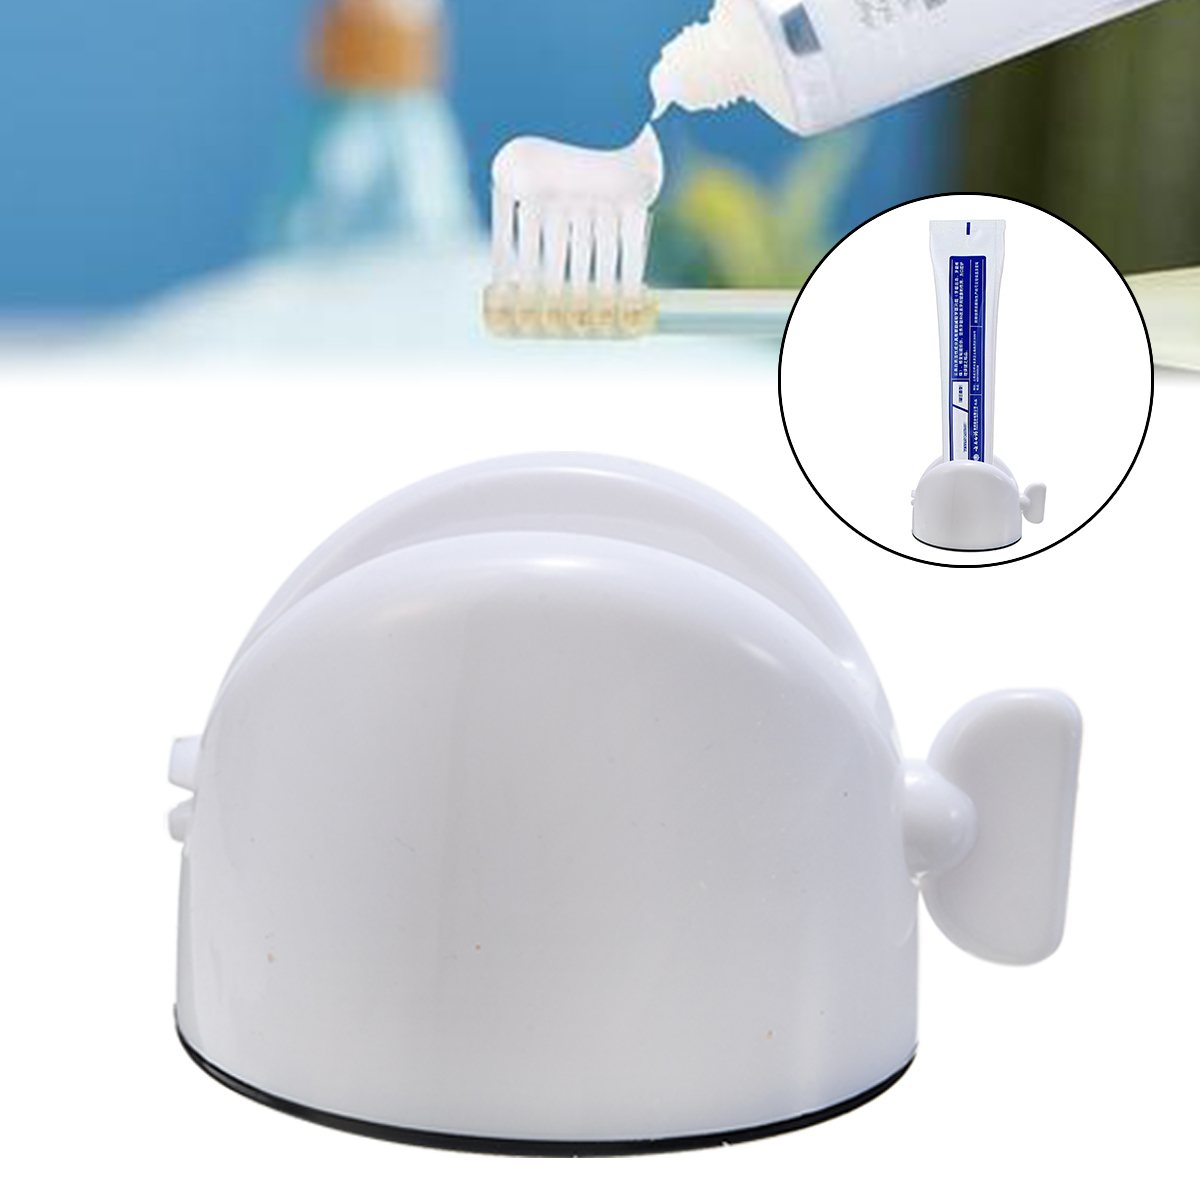 1pc Rolling Tube Toothpaste Squeezer Dispenser Toothpaste Seat Holder Stand Roller Bathroom Accessories